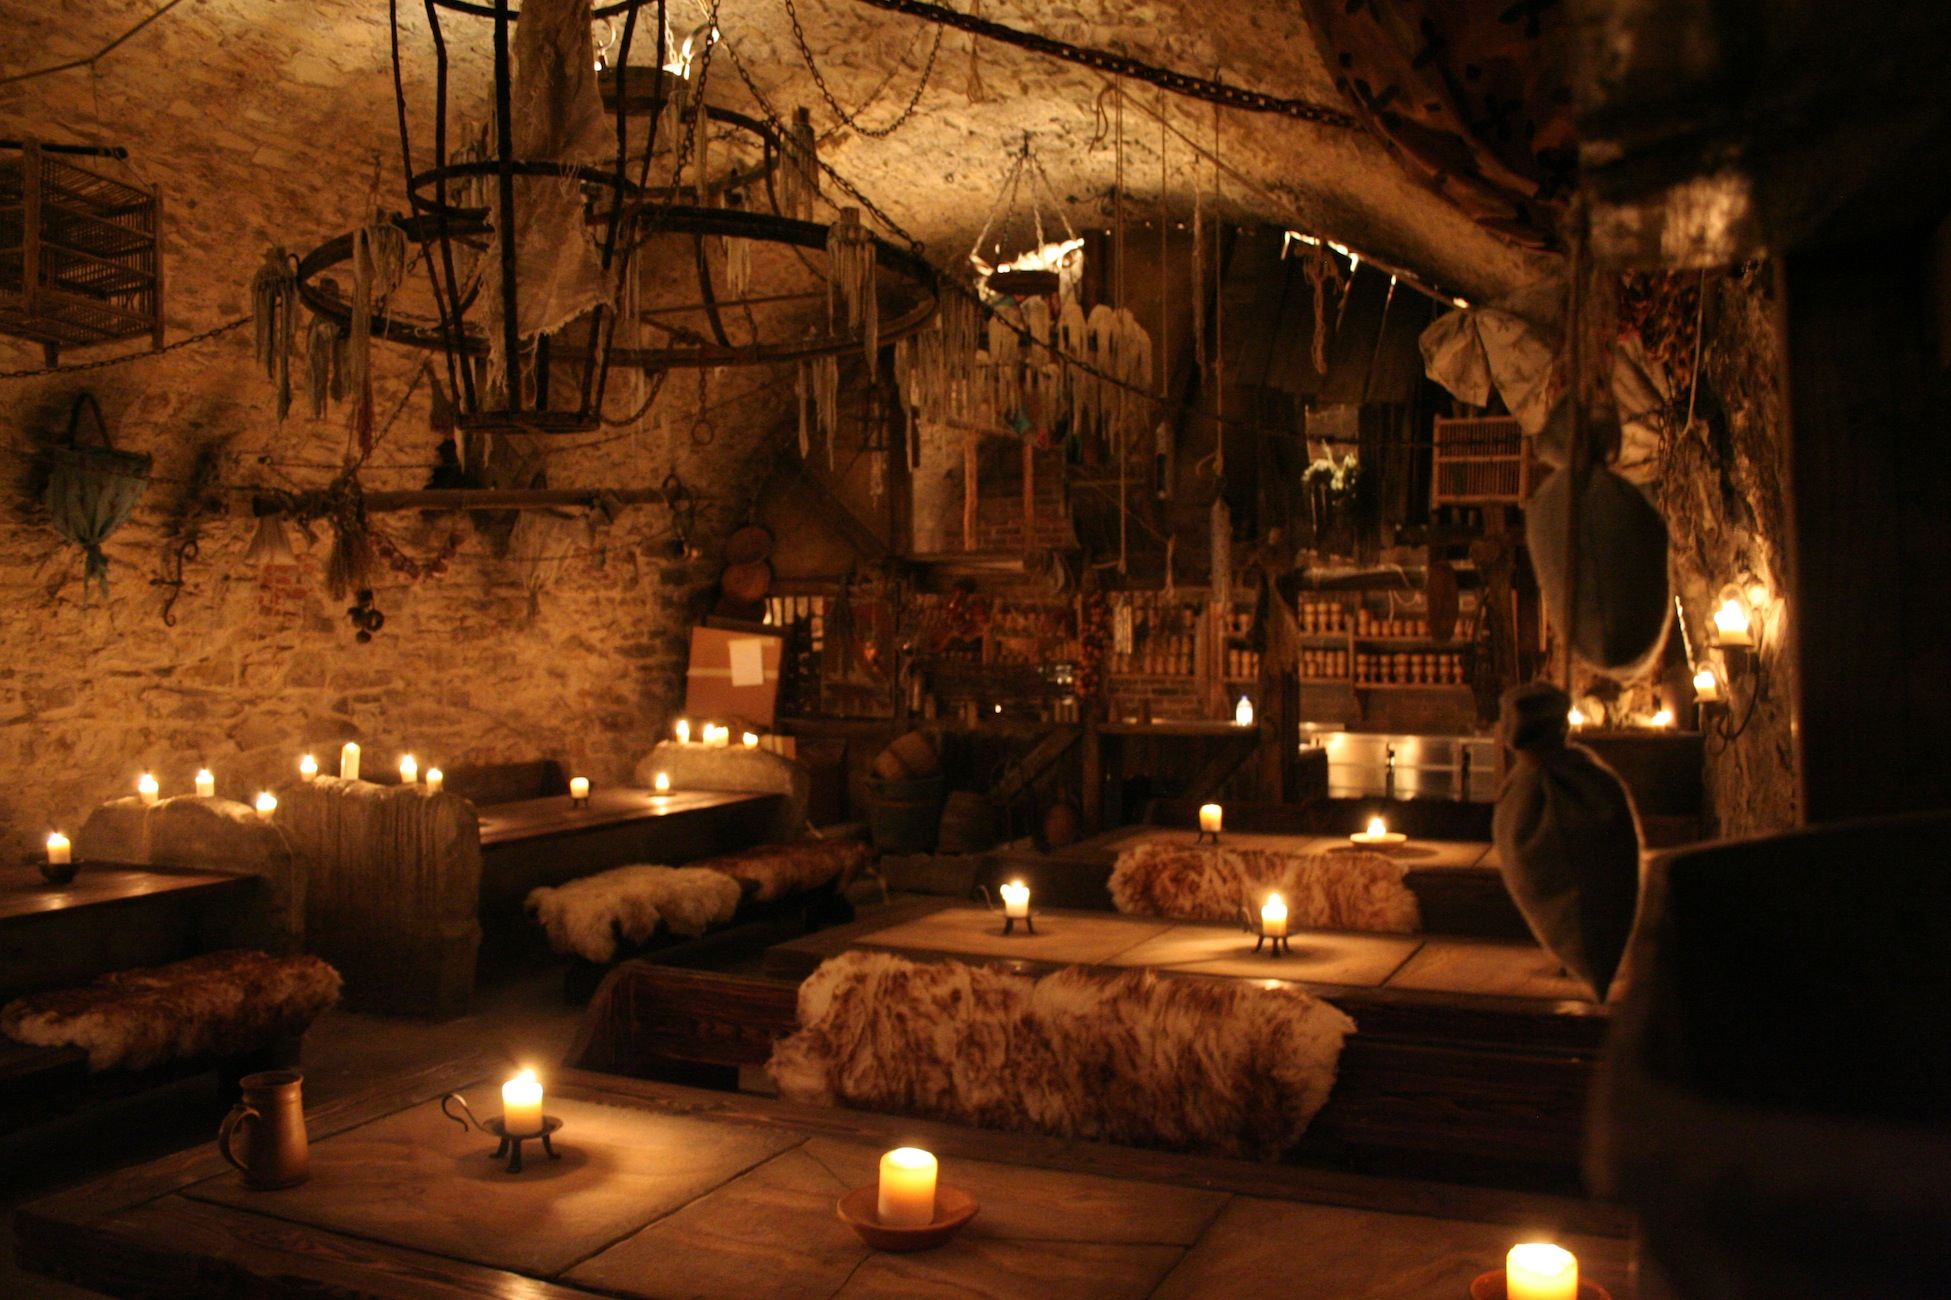 5 Medieval style Game of Thrones Restaurants in Europe : tavern from www.messynessychic.com size 1951 x 1300 jpeg 637kB